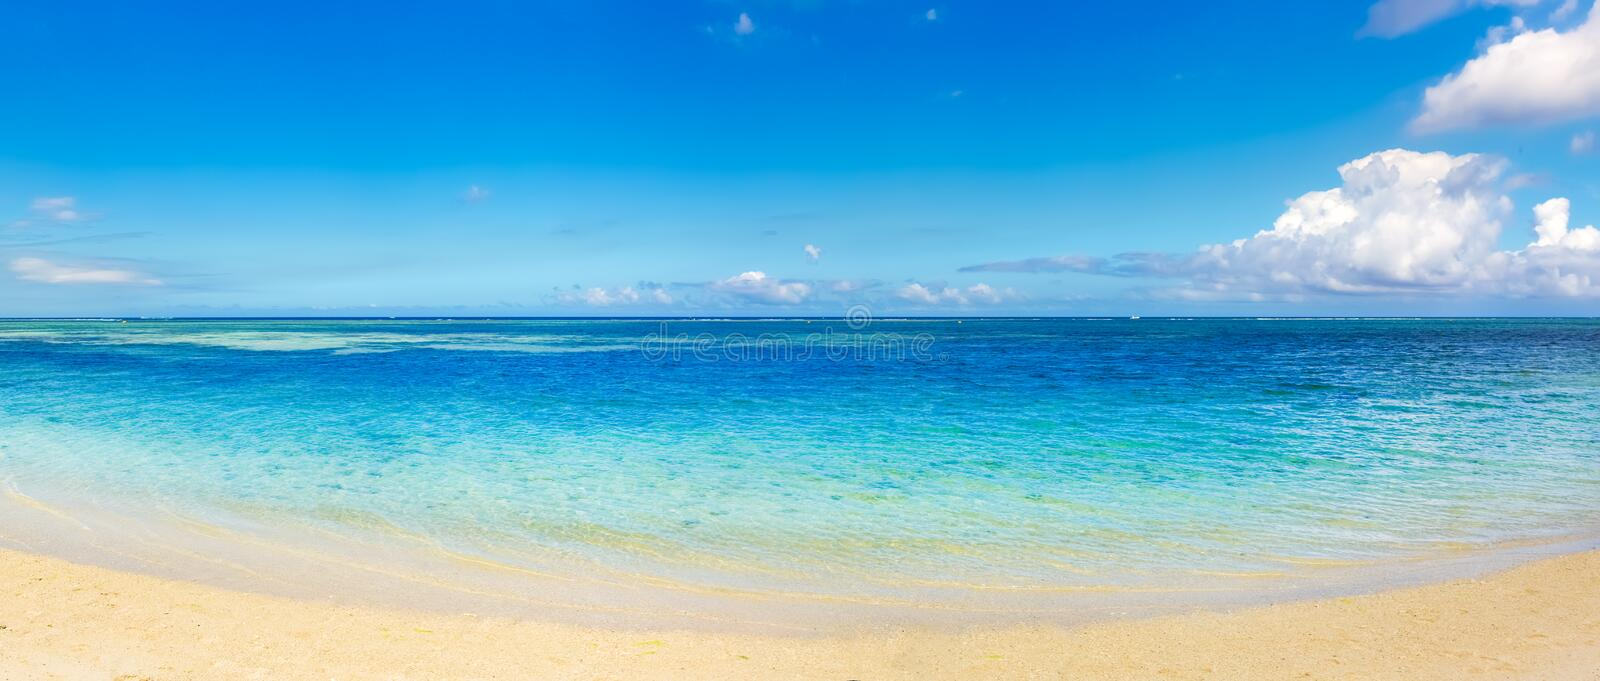 Plage tropicale de Sandy Beau paysage Panorama photos libres de droits